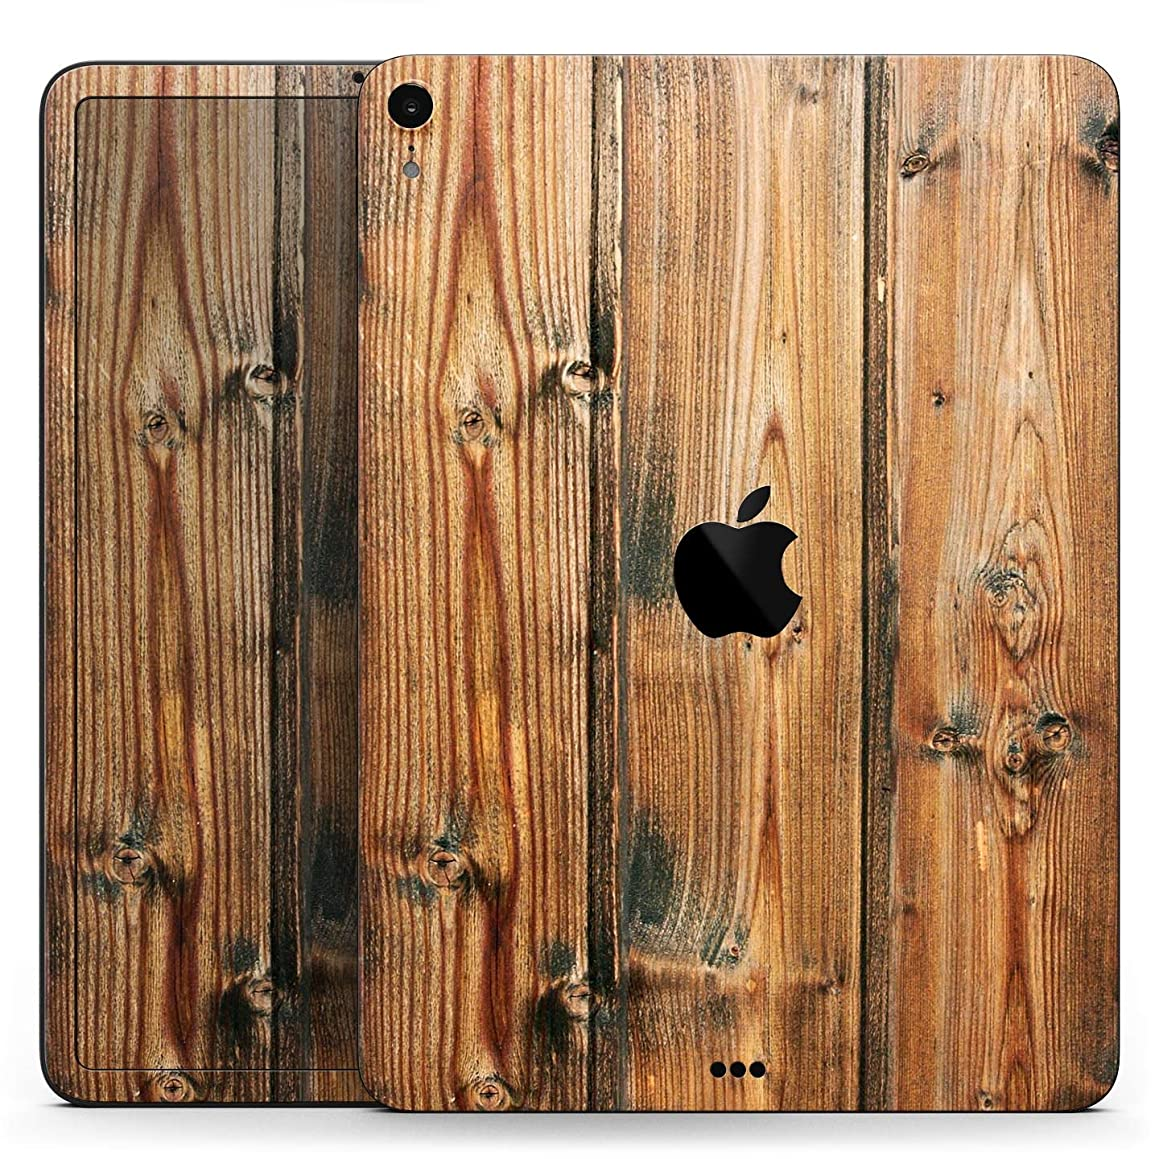 Vertical Raw Aged Wood Planks - Full Body Skin Decal for The Apple iPad Pro 12.9-inch 1st gen - (A1584/A1652)